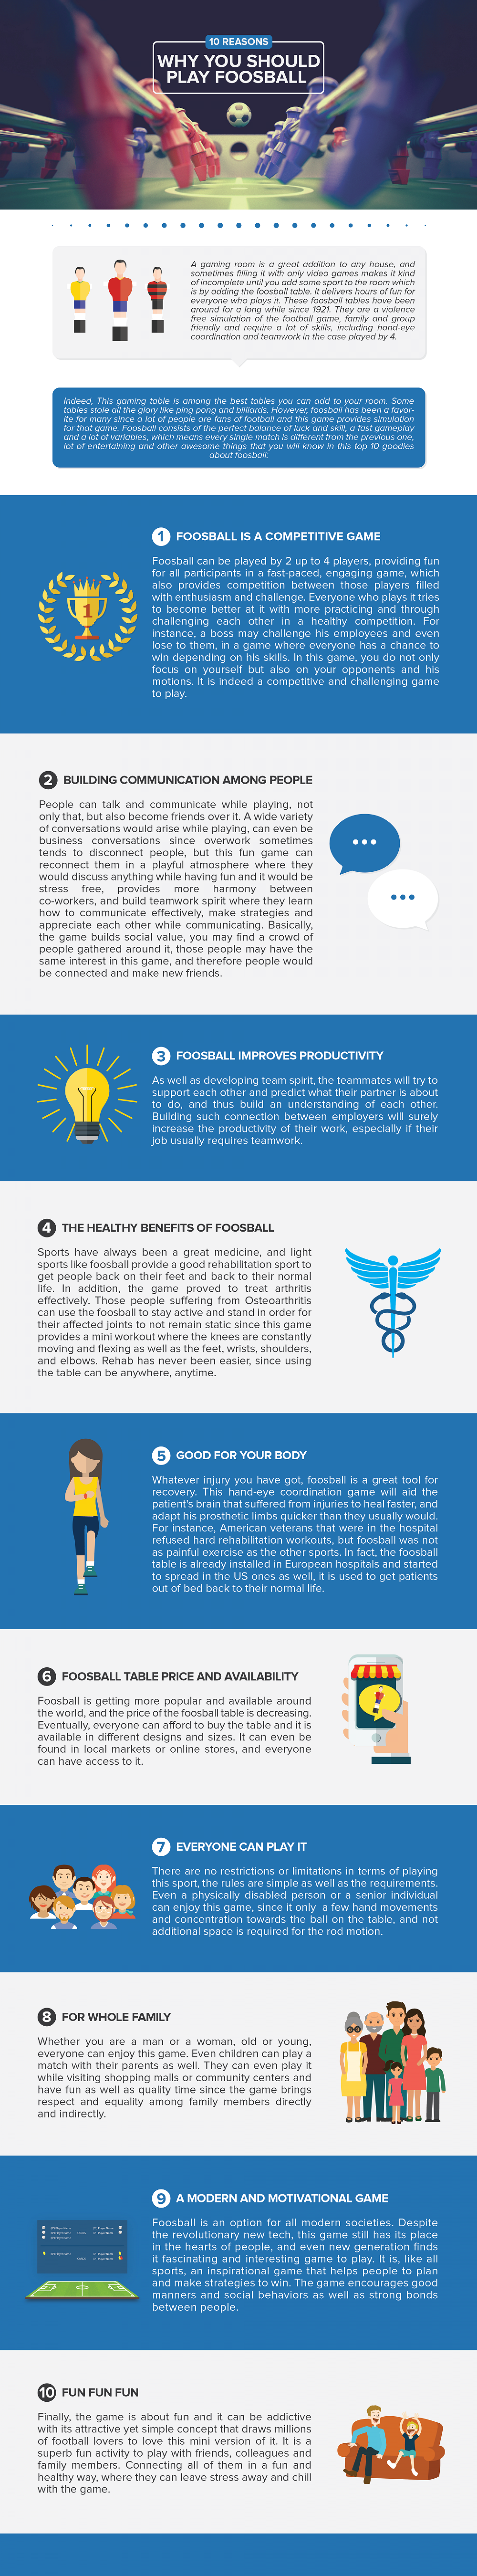 10 Reasons To Play Foosball Infographic